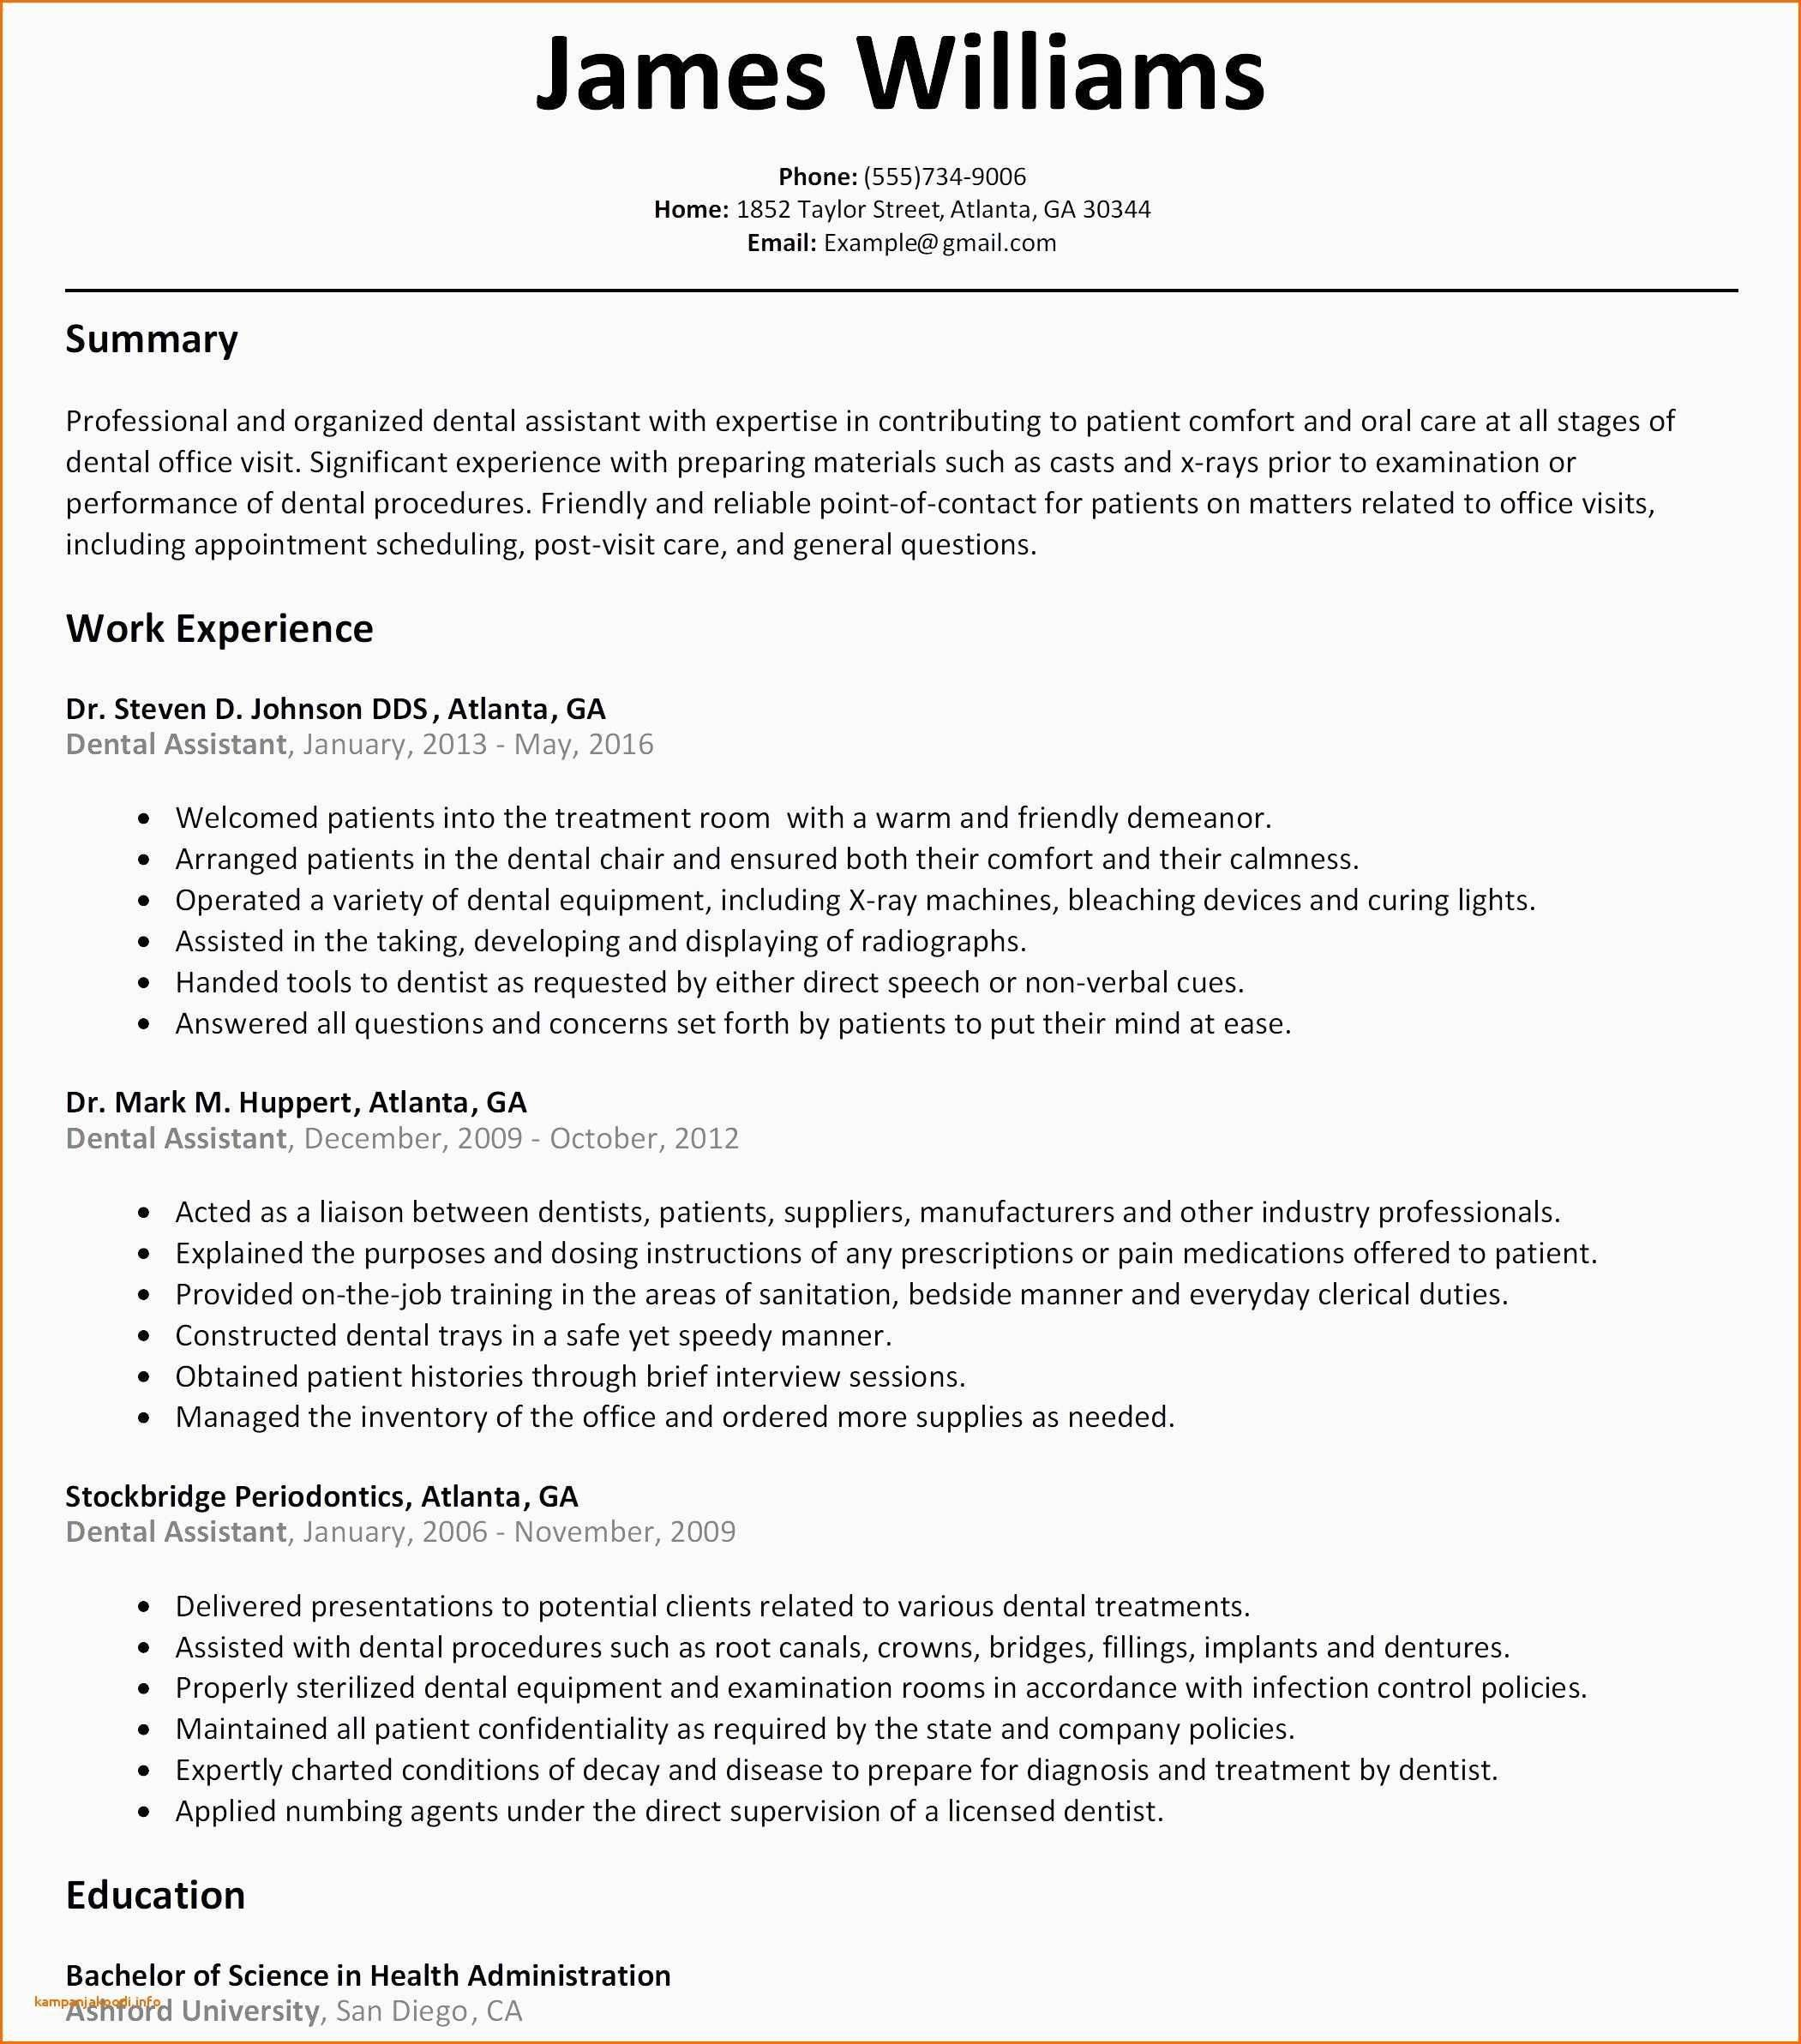 Resume Summary Examples For Medical Assistant